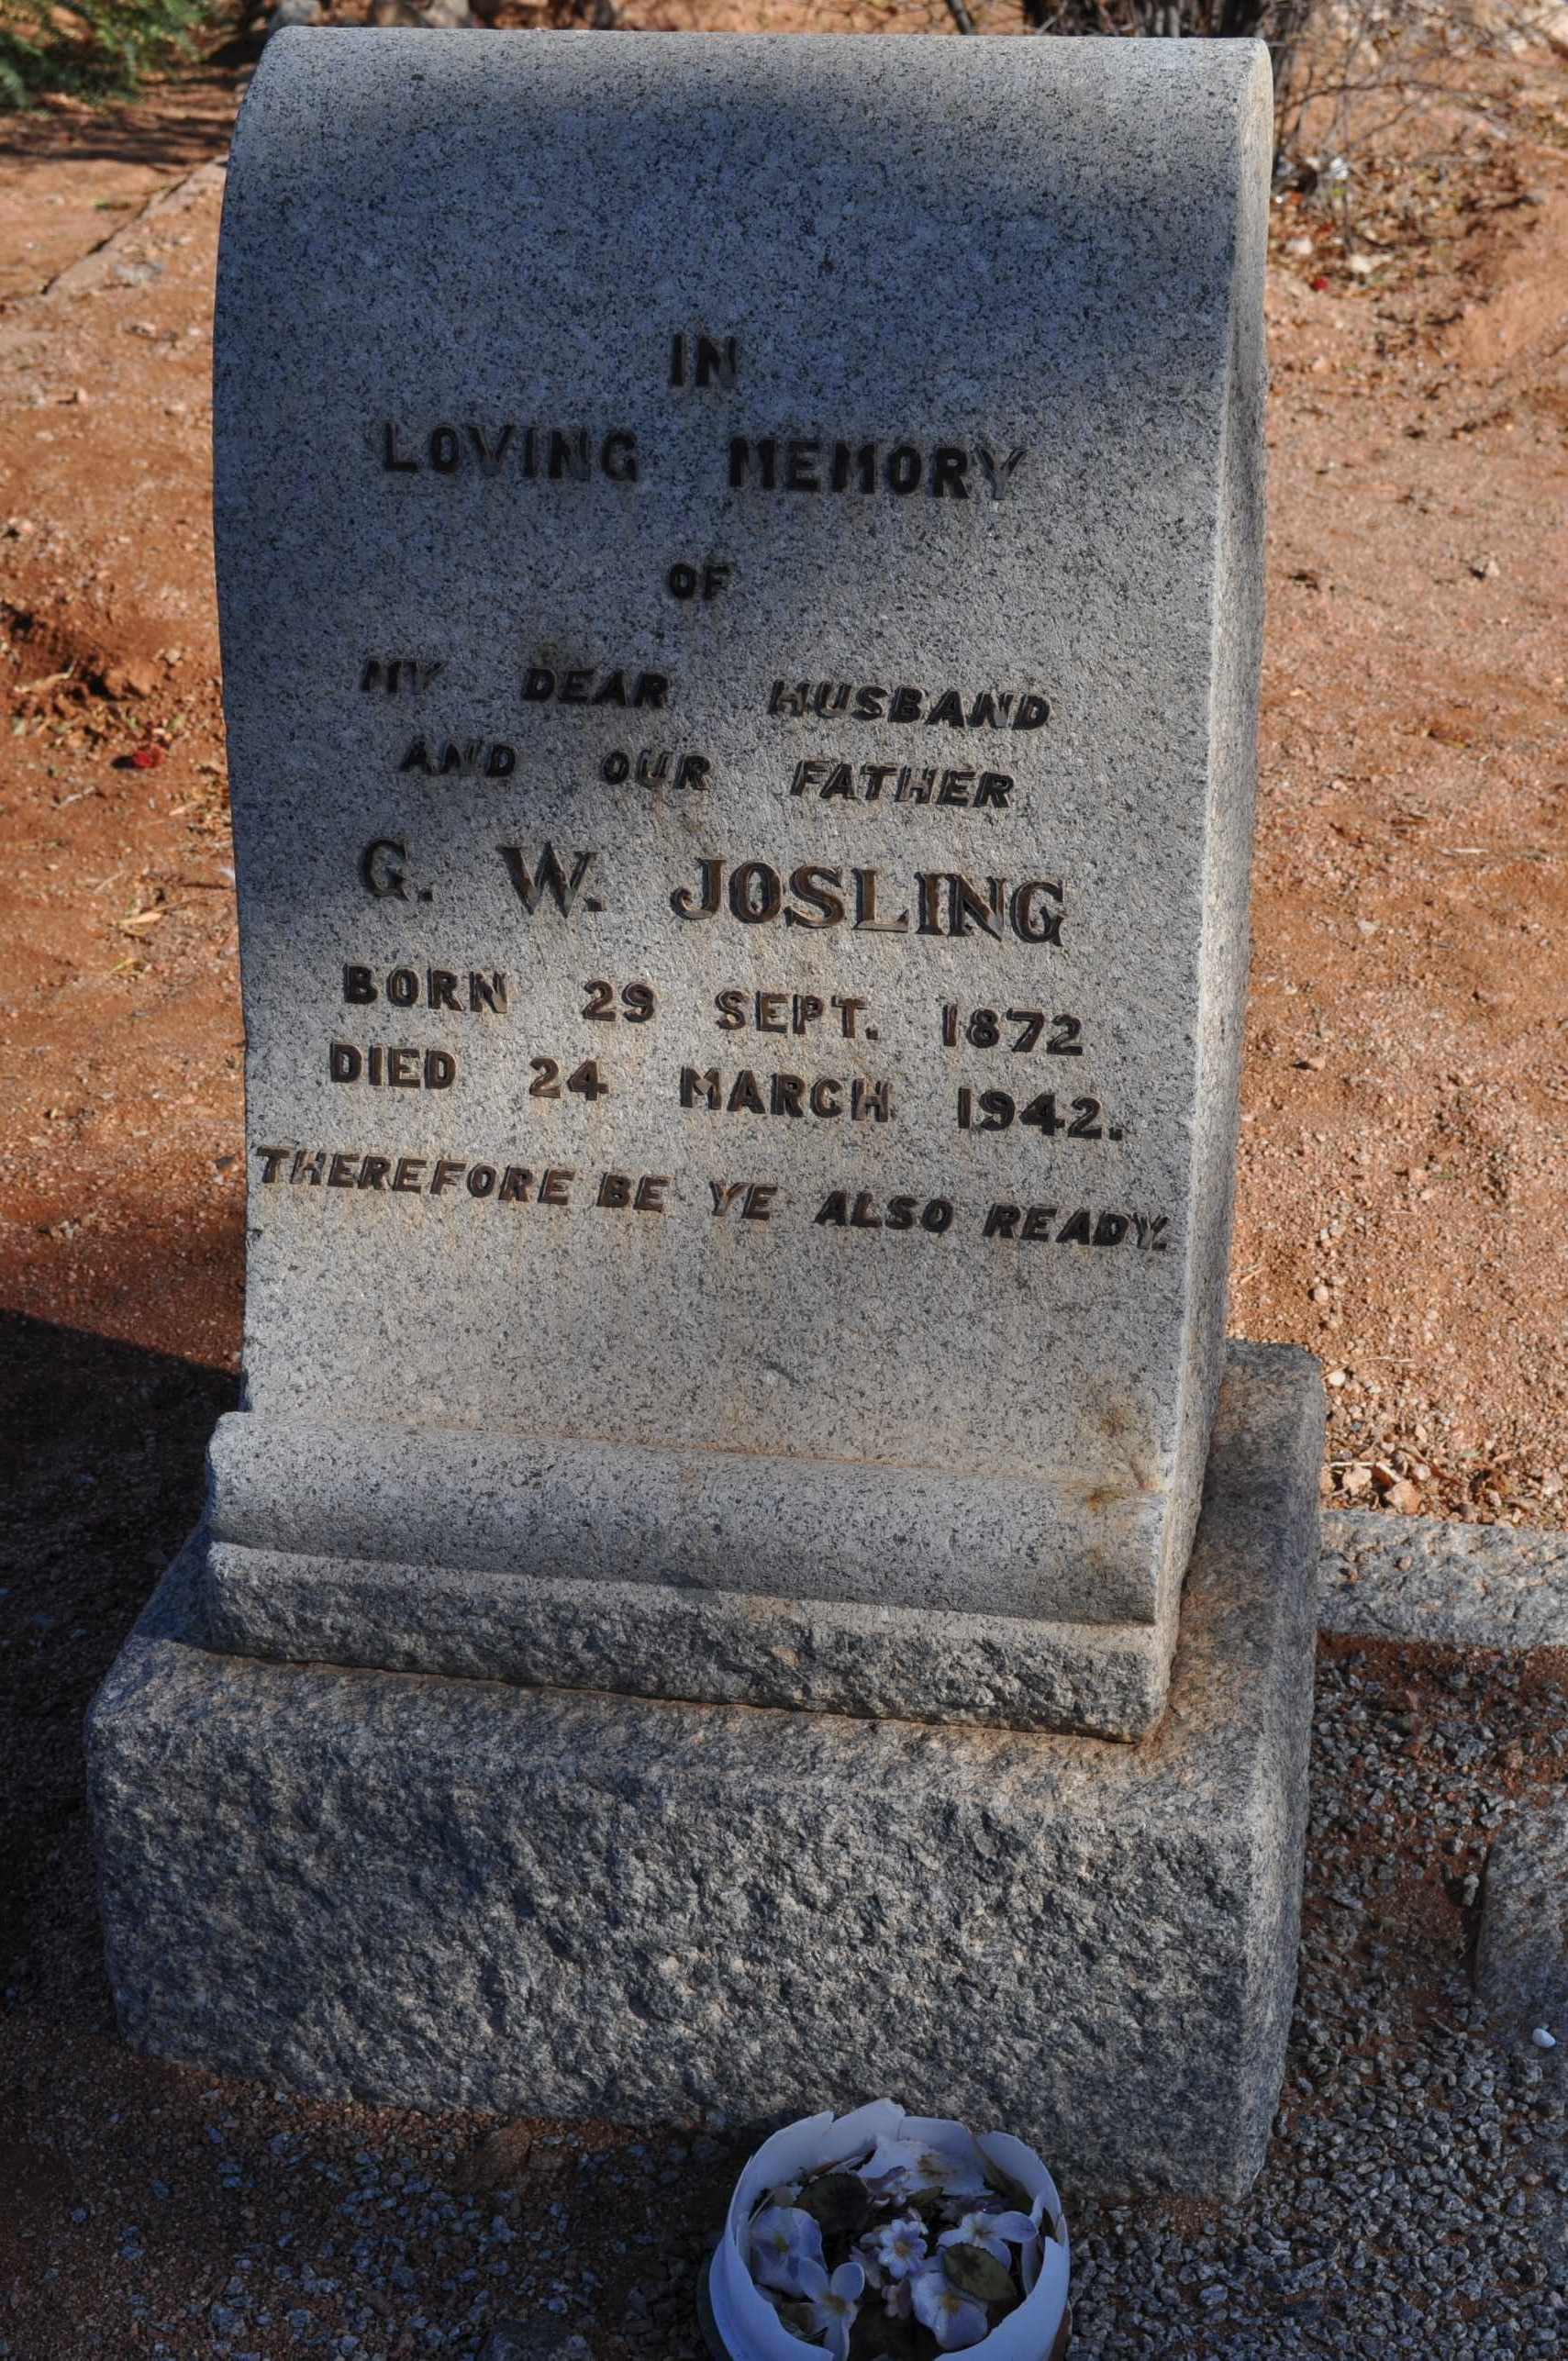 Josling, GW born 29 September 1872 died 24 March 1942